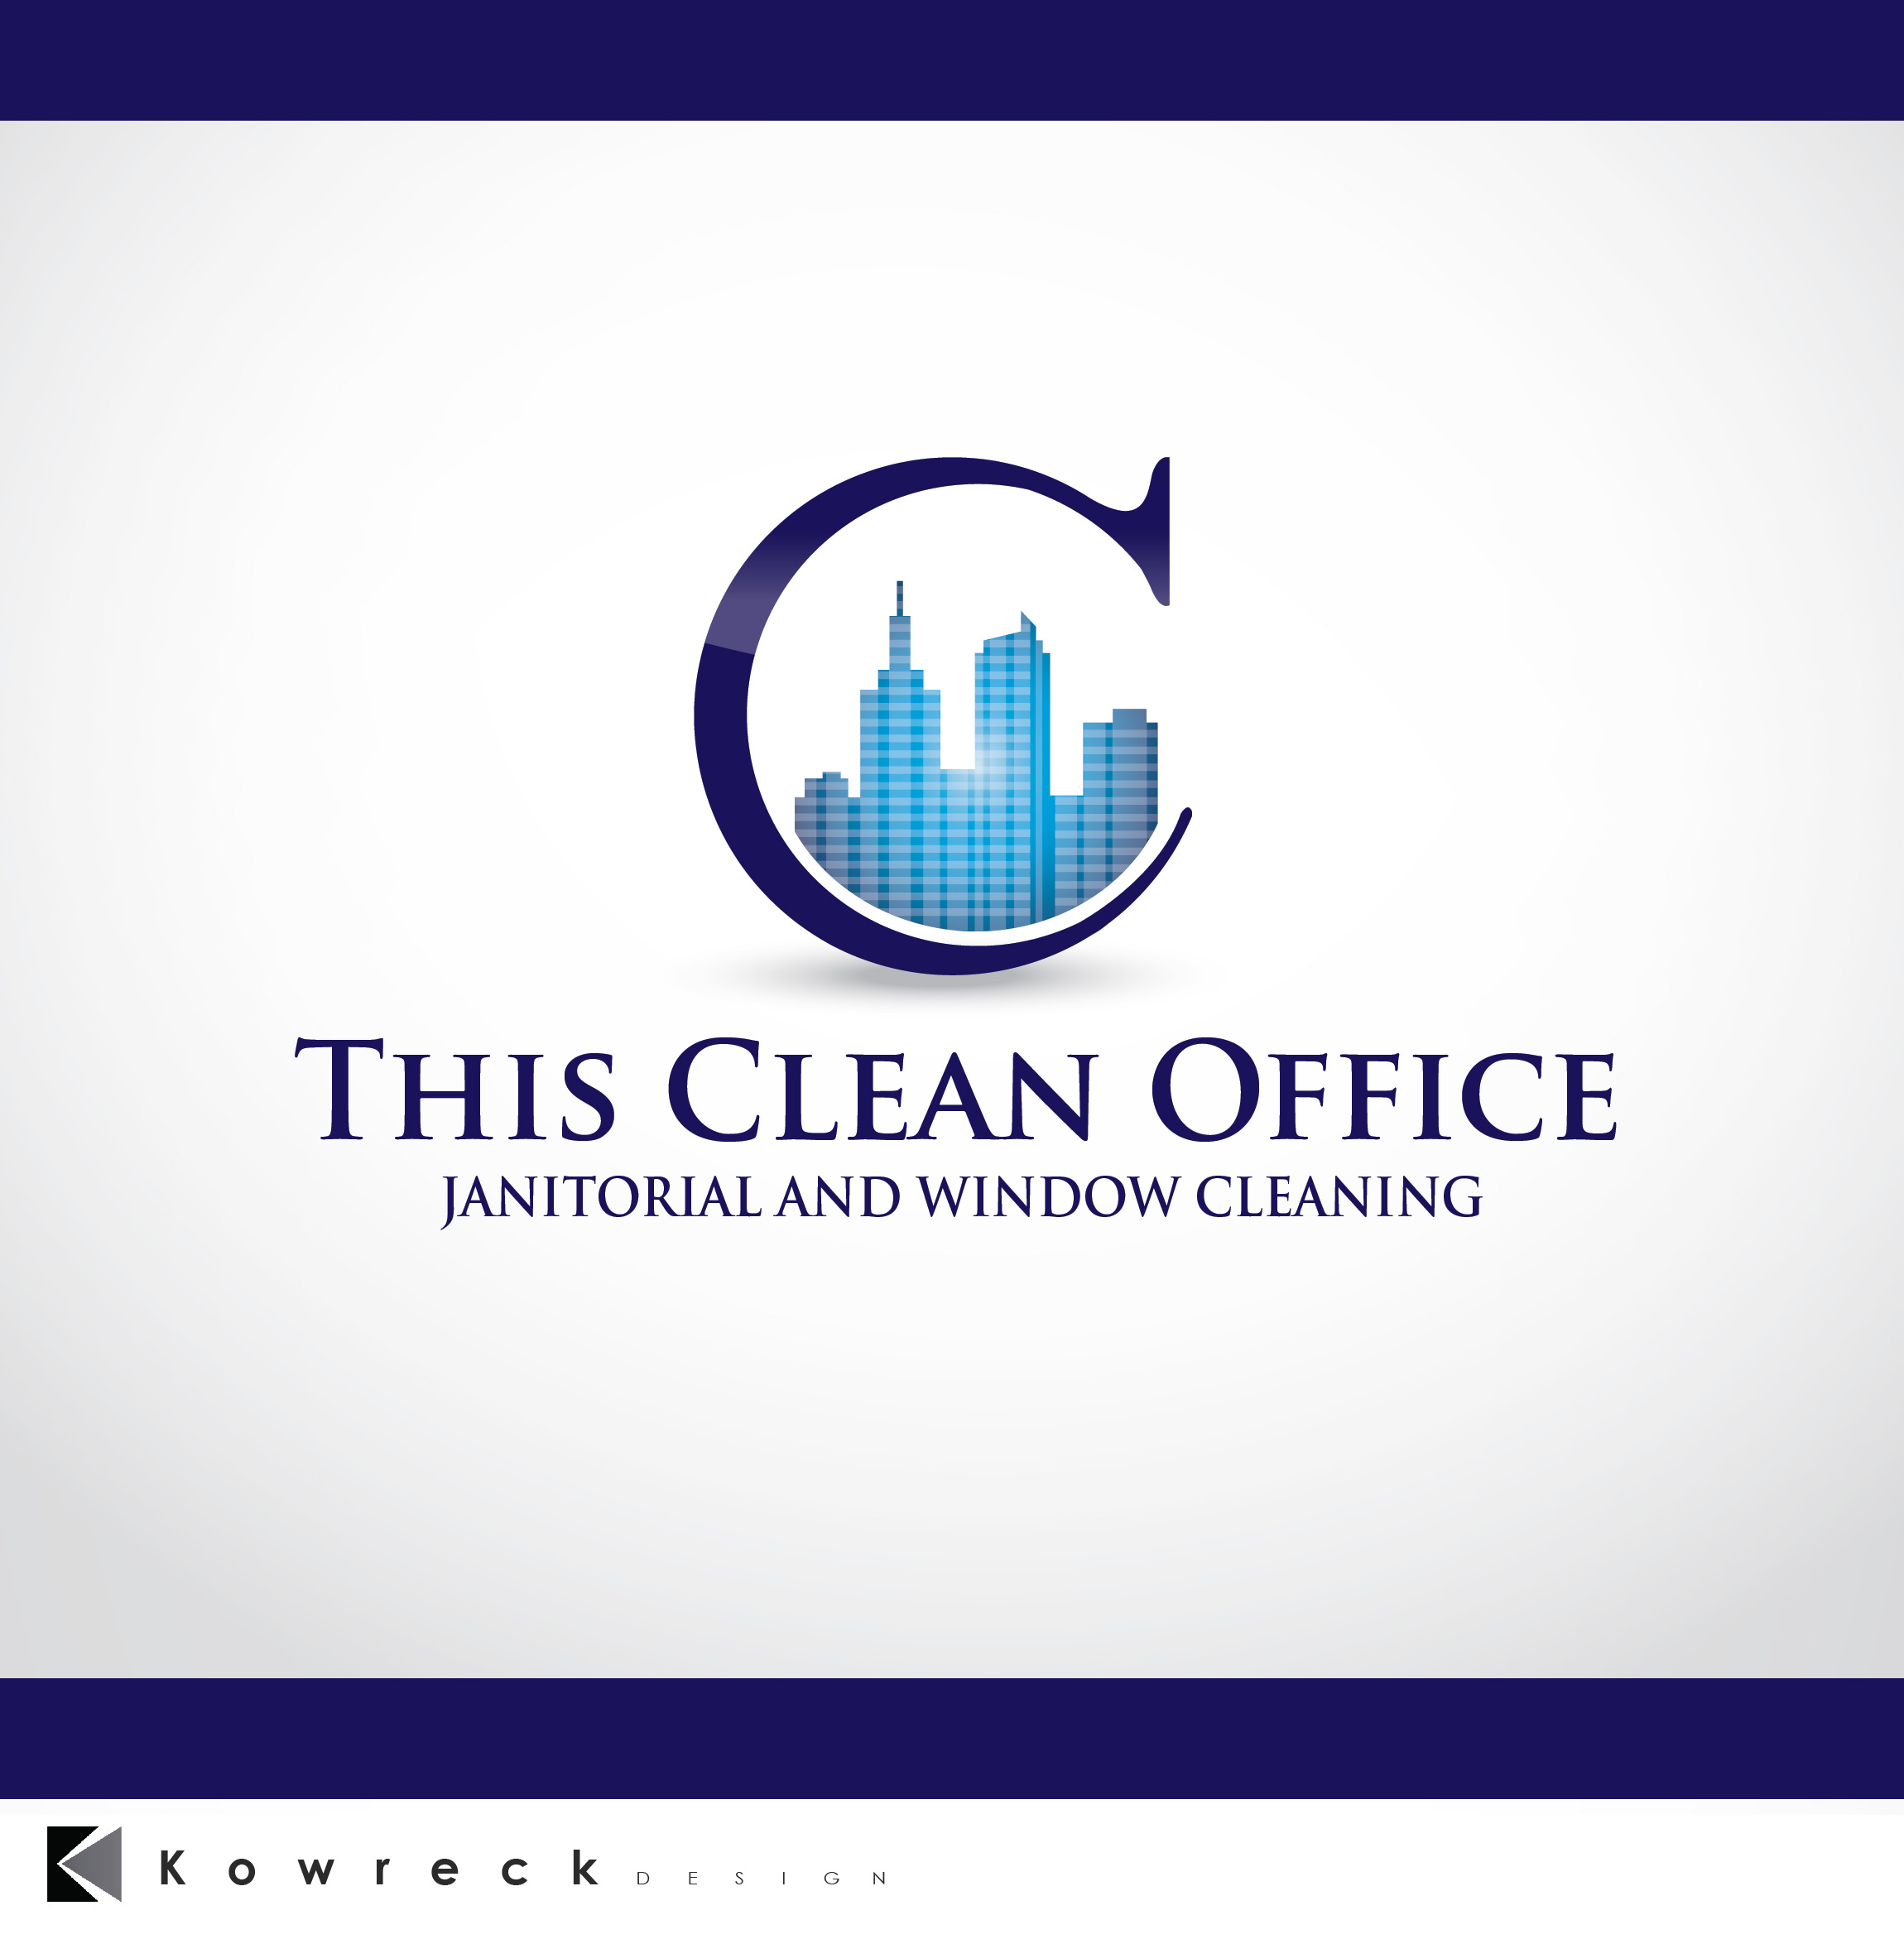 Logo Design by kowreck - Entry No. 99 in the Logo Design Contest Professional and Unforgettable Logo Design for This Clean Office.